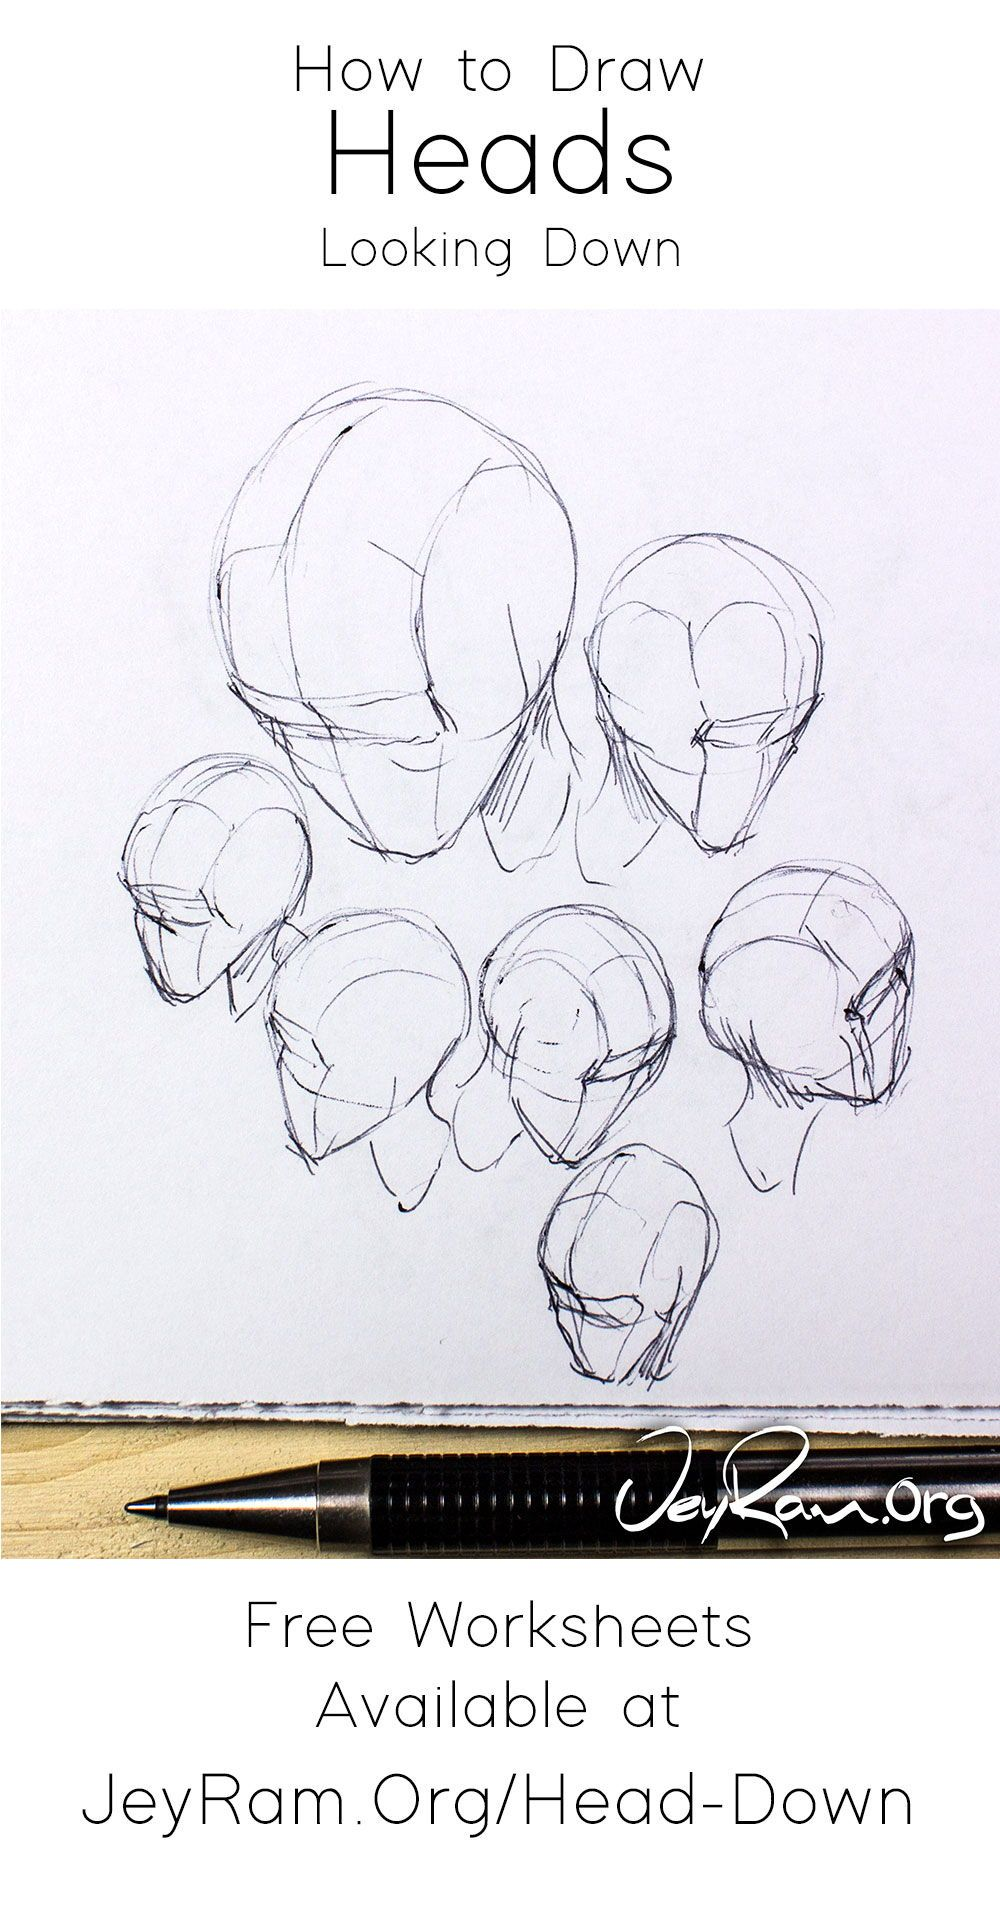 How To Draw The Head Looking Down Or As Seen From Above In 2020 Drawings Creative Drawing Drawing Anime Bodies